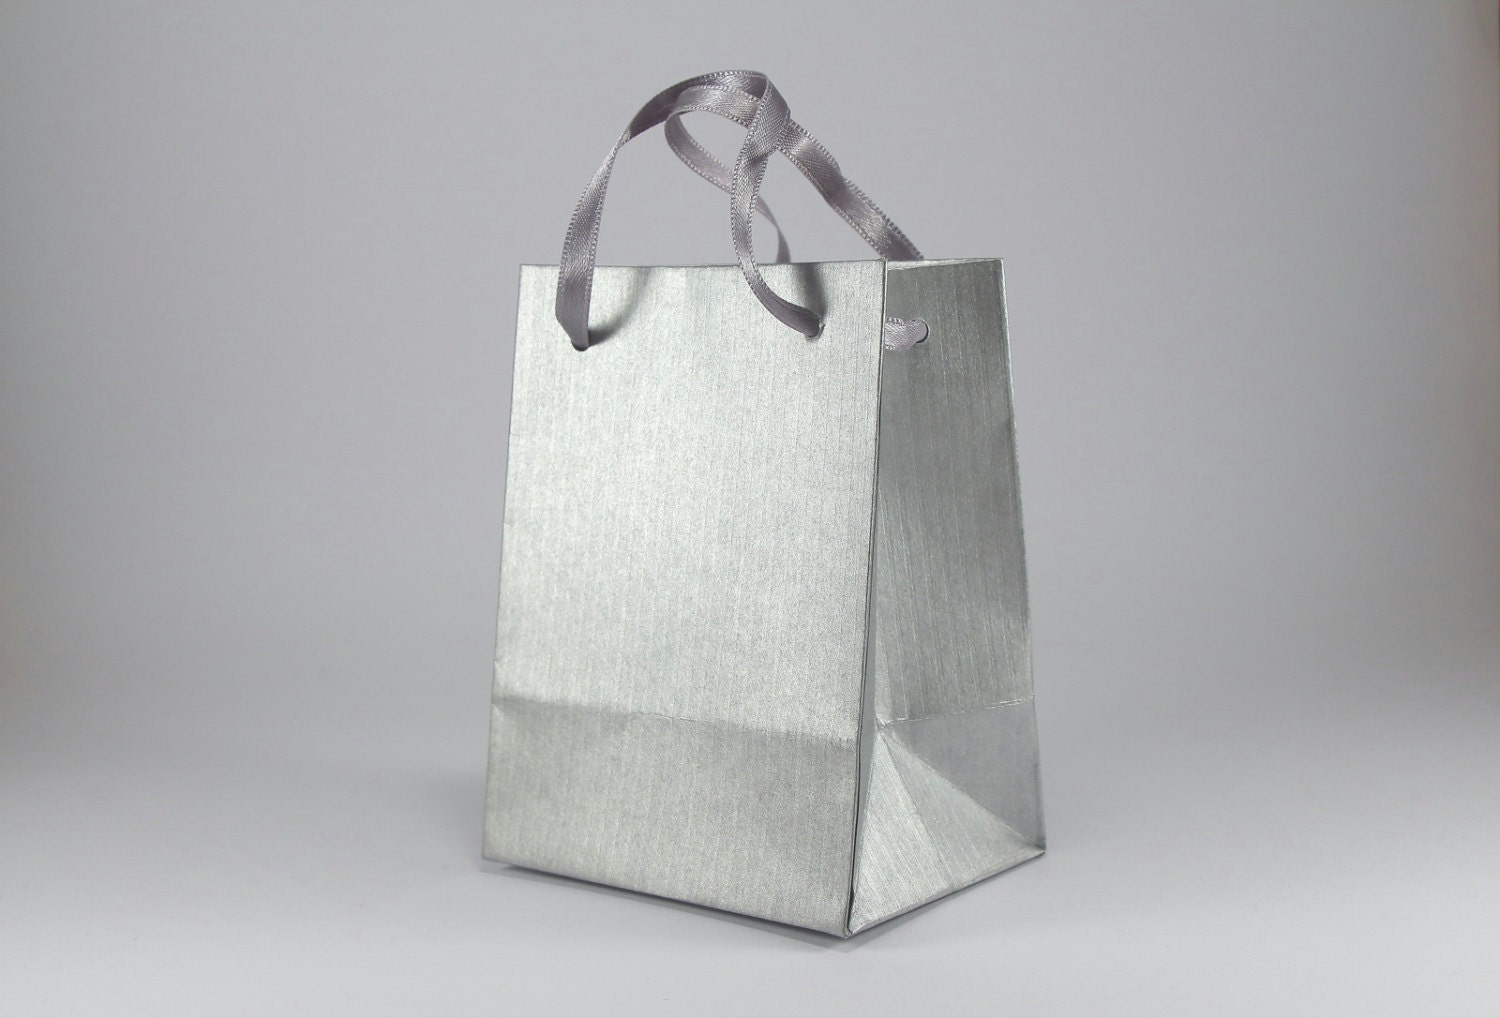 9 Paper Gift Bags with Handles Extra Small Silver Paper Bags